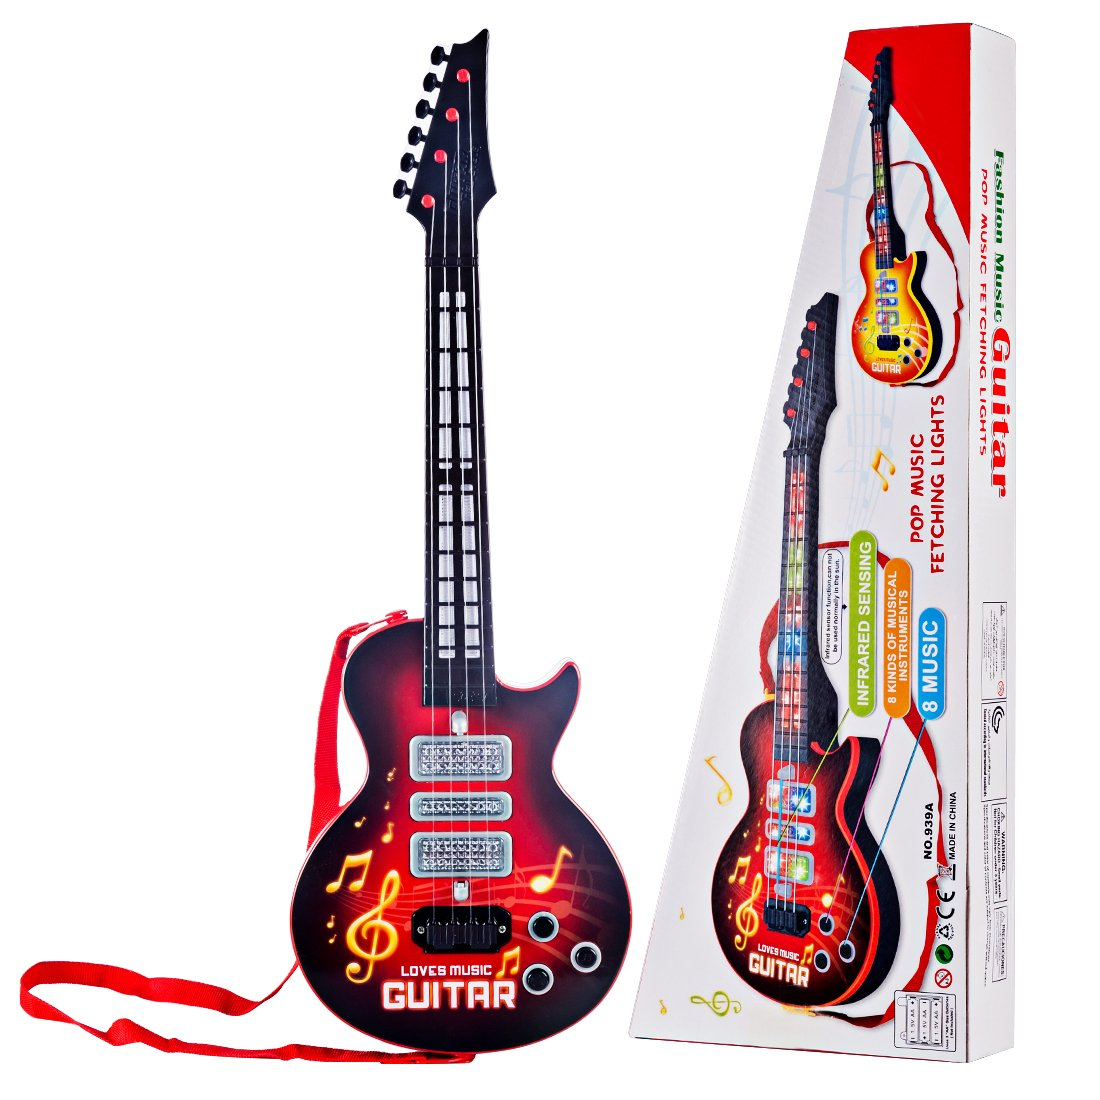 RuiyiF Kids Guitar, Beginner Electric Toy Guitar for Boys Girls Toddlers 21 Inch (Red) by RuiyiF